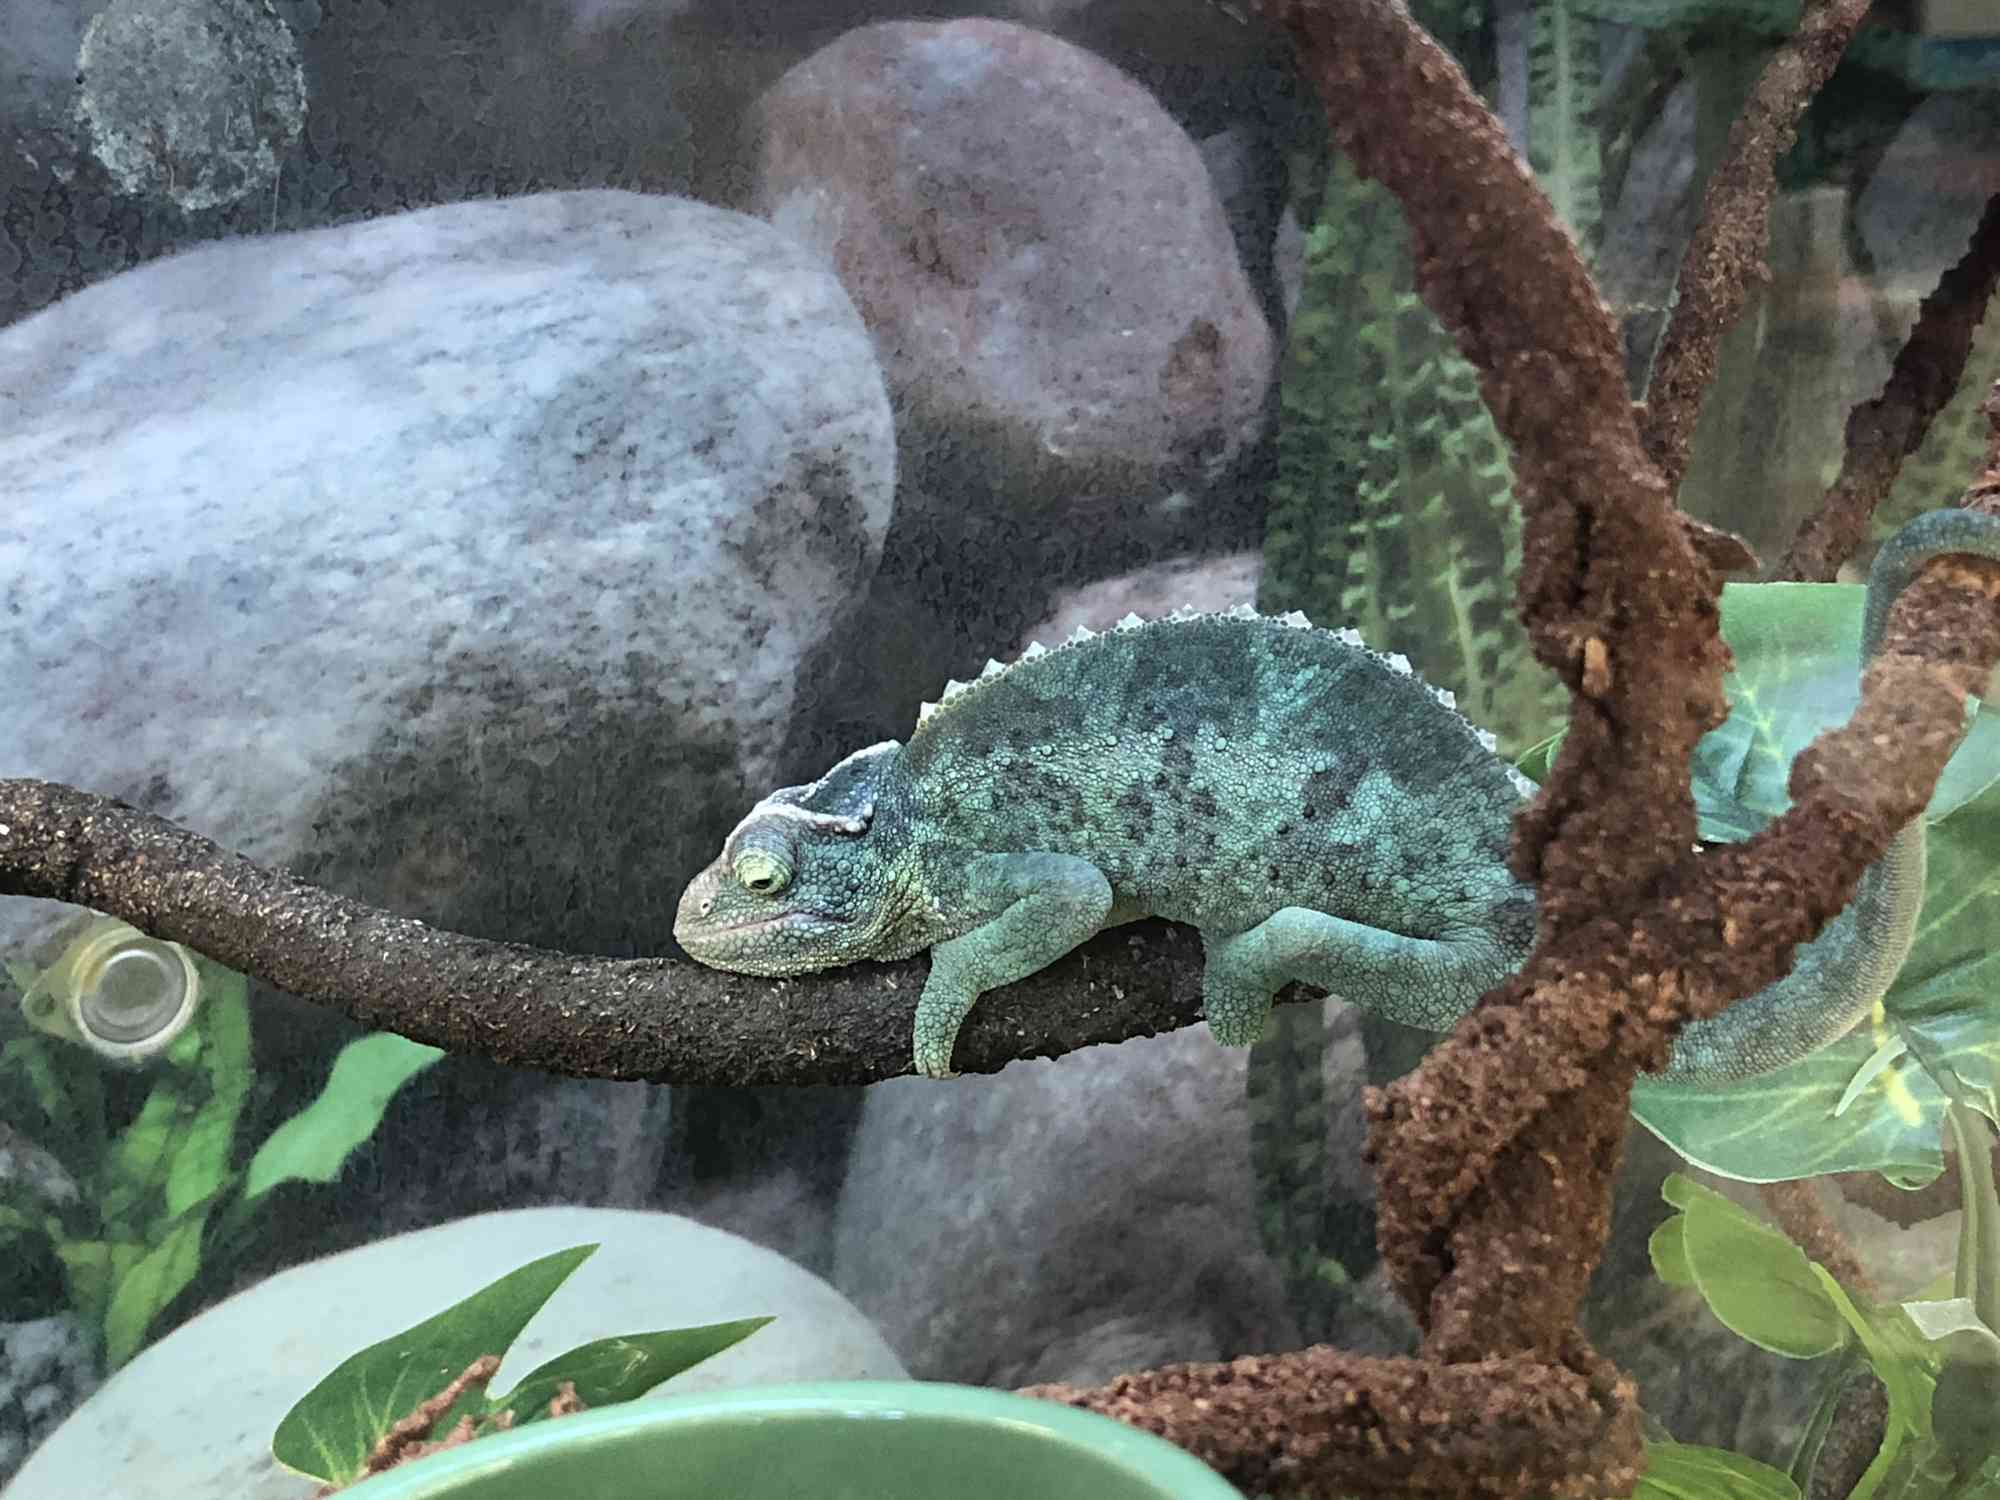 Chameleon sleeping on a branch